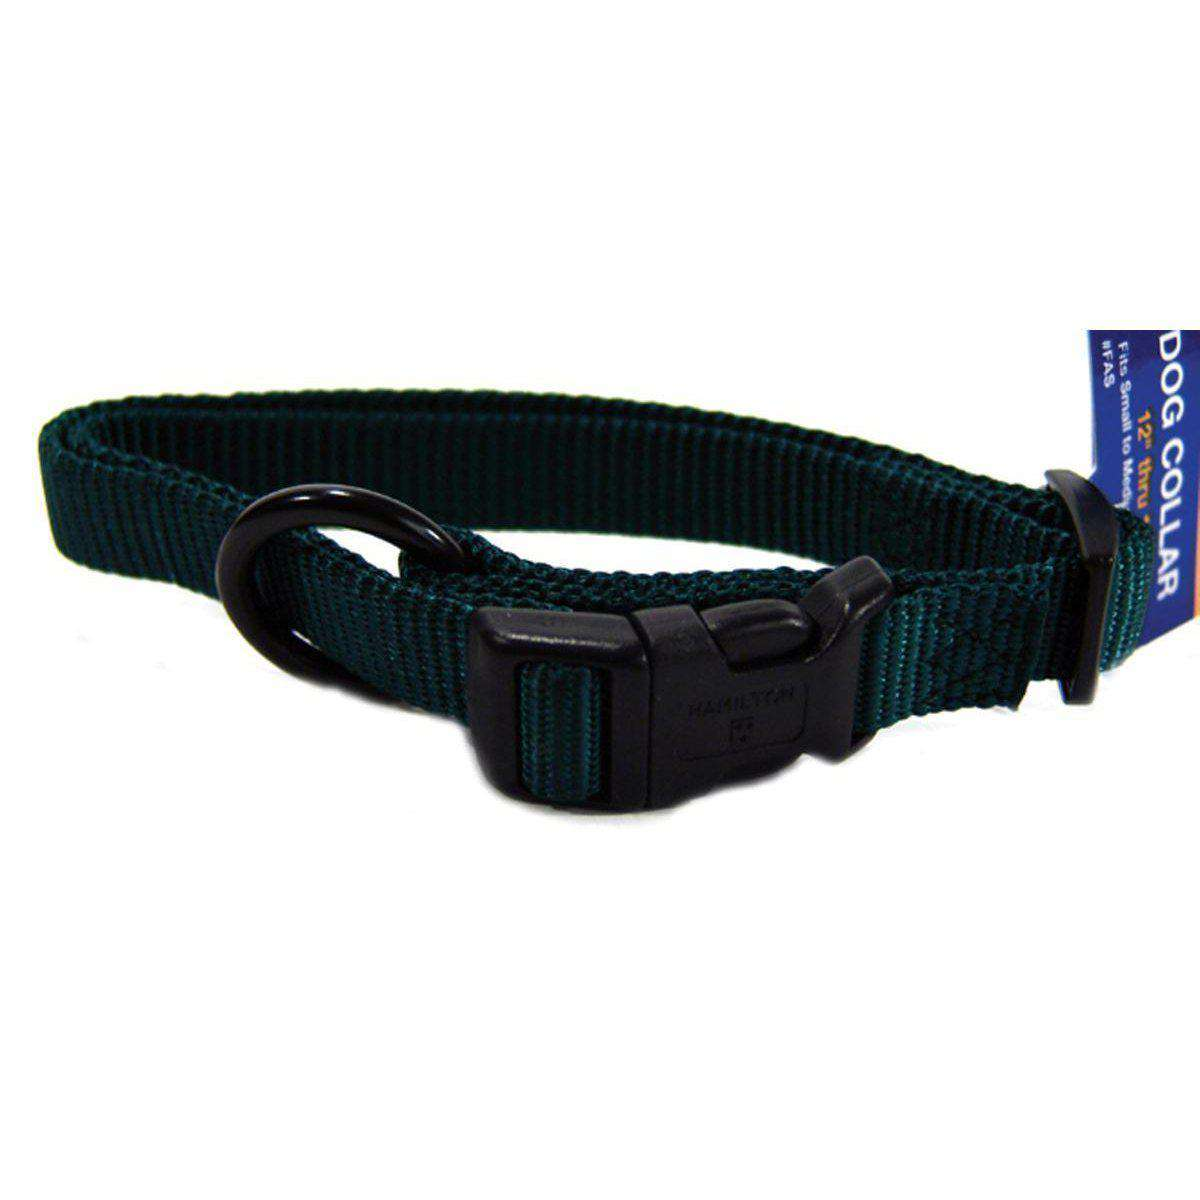 Adjustable Nylon Dog Collar-Hamilton-DirtyFurClothing